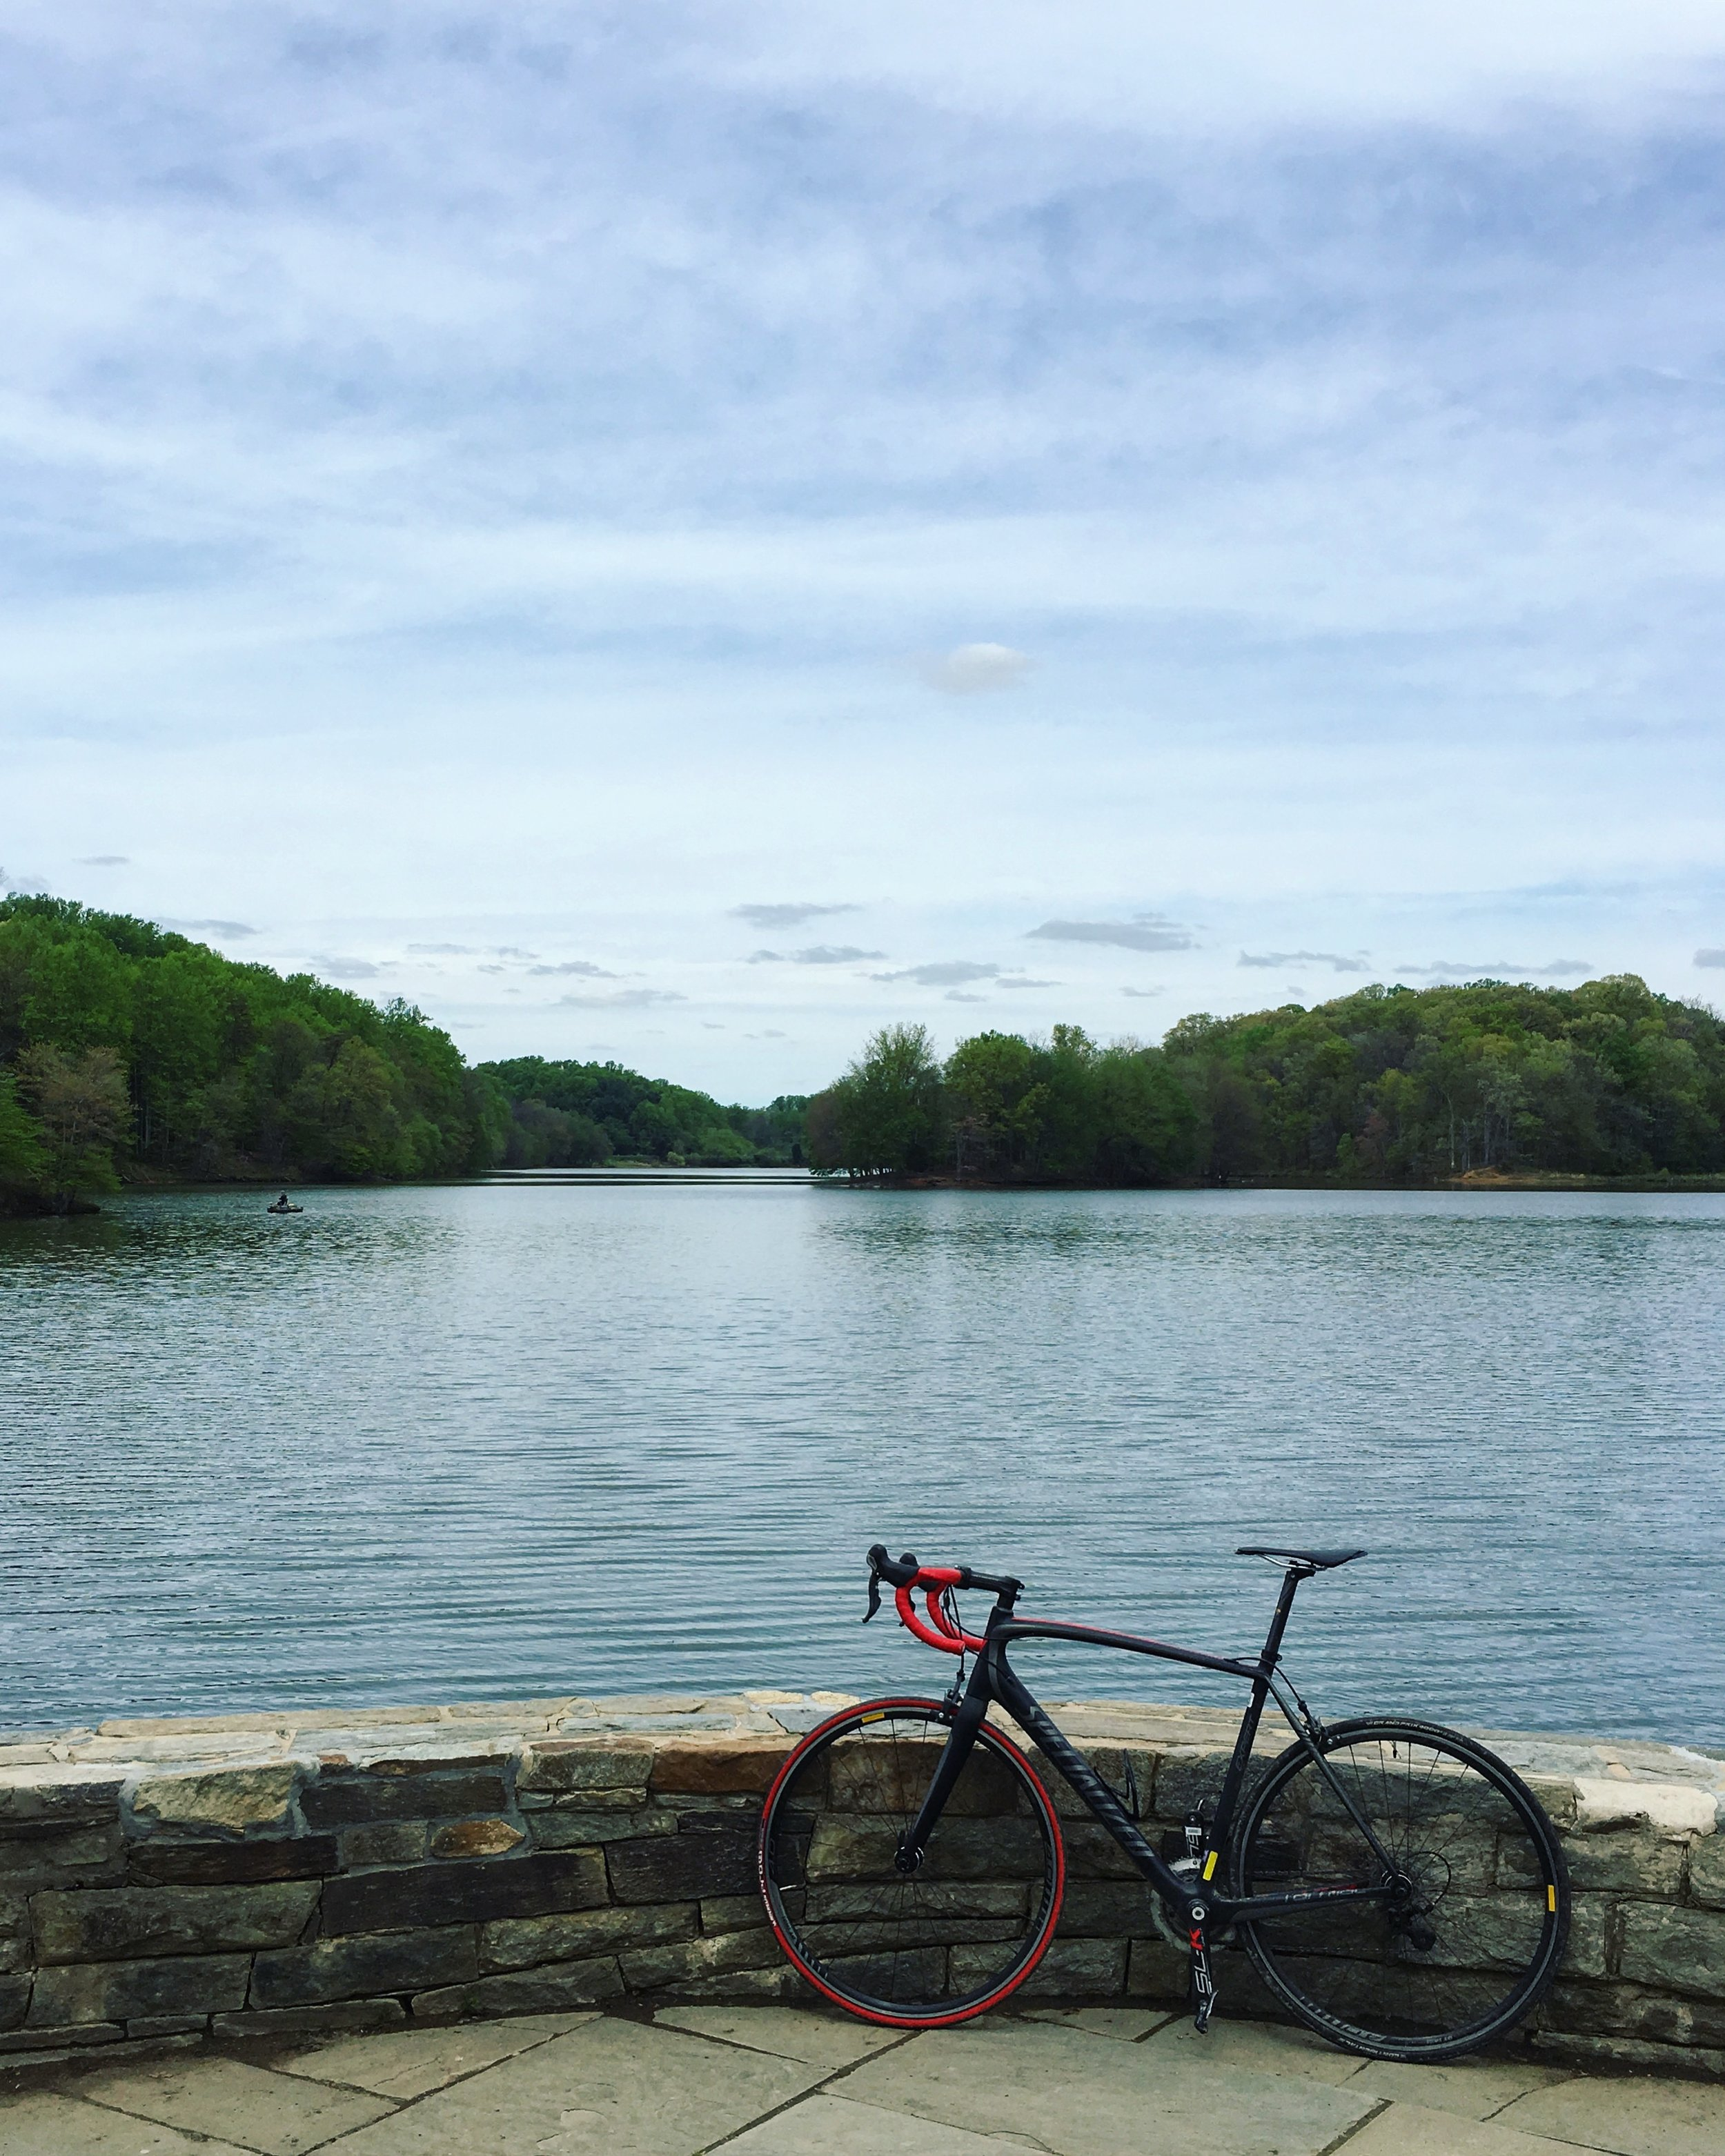 The DMV offers great trails for cyclists.